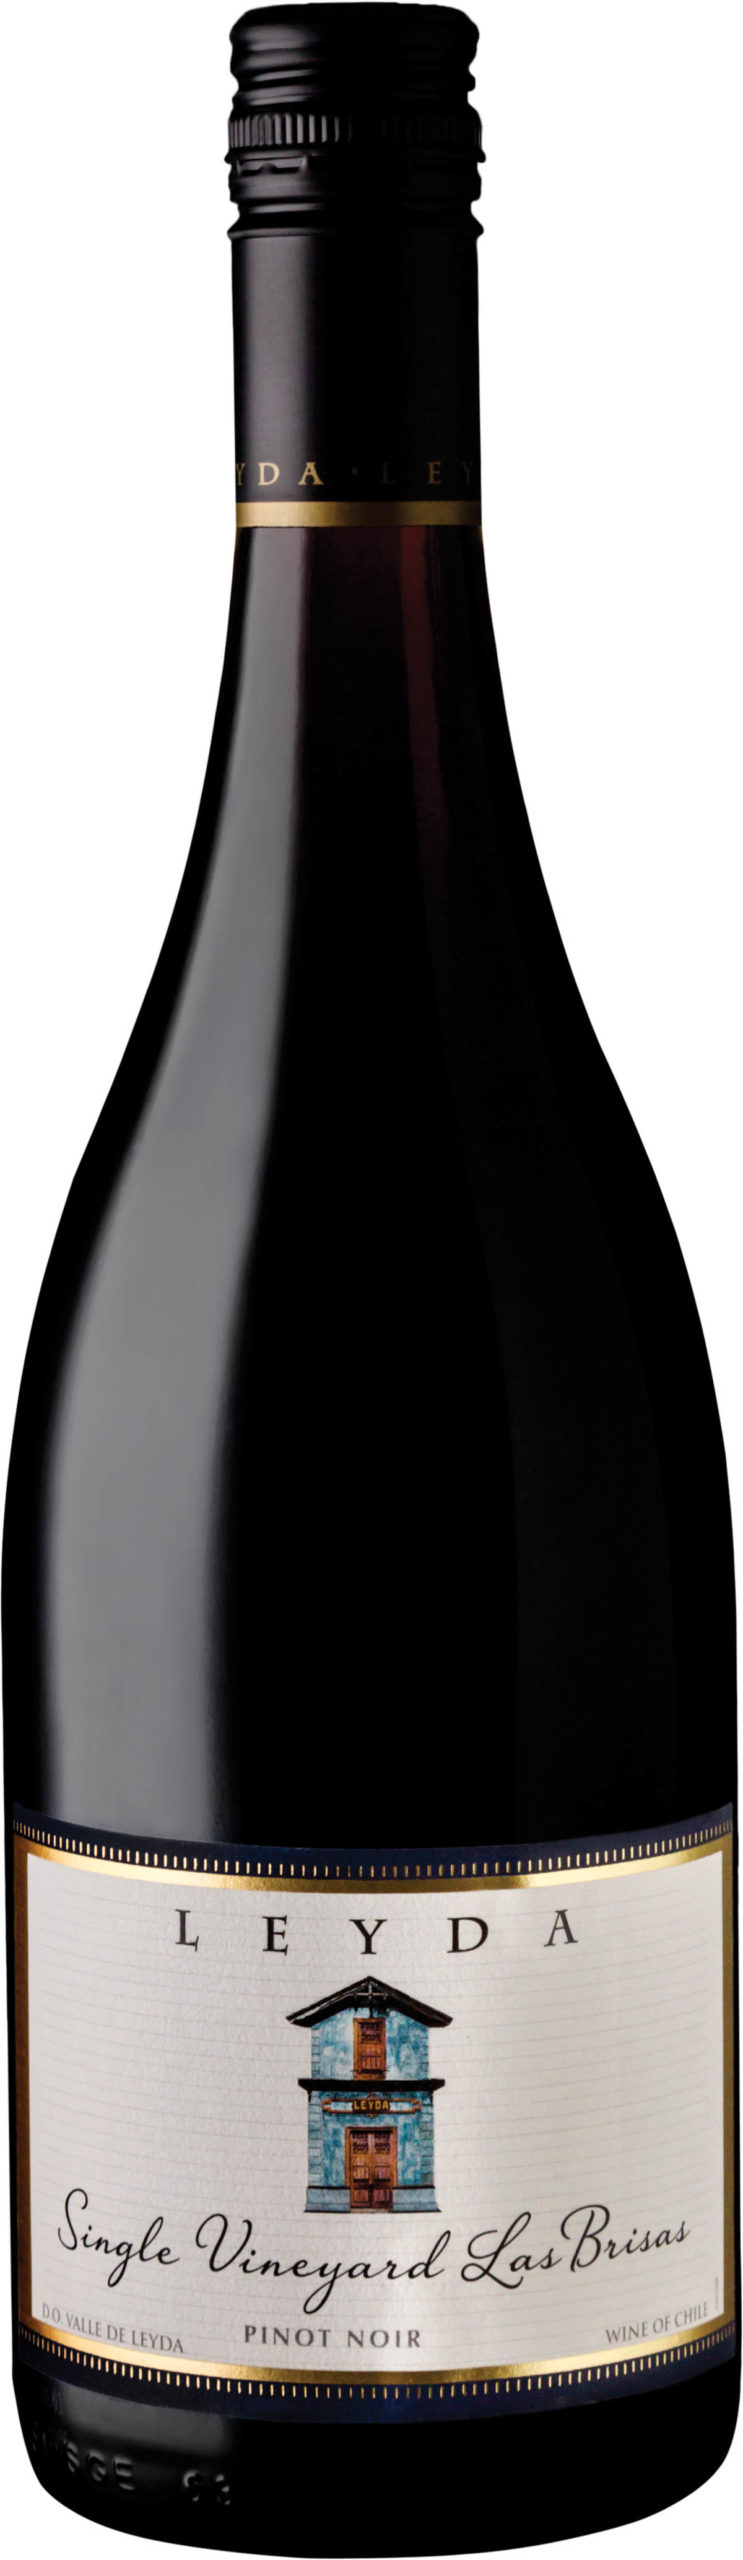 Leyda Single Vineyard Las Brisas Pinot Noir 2017